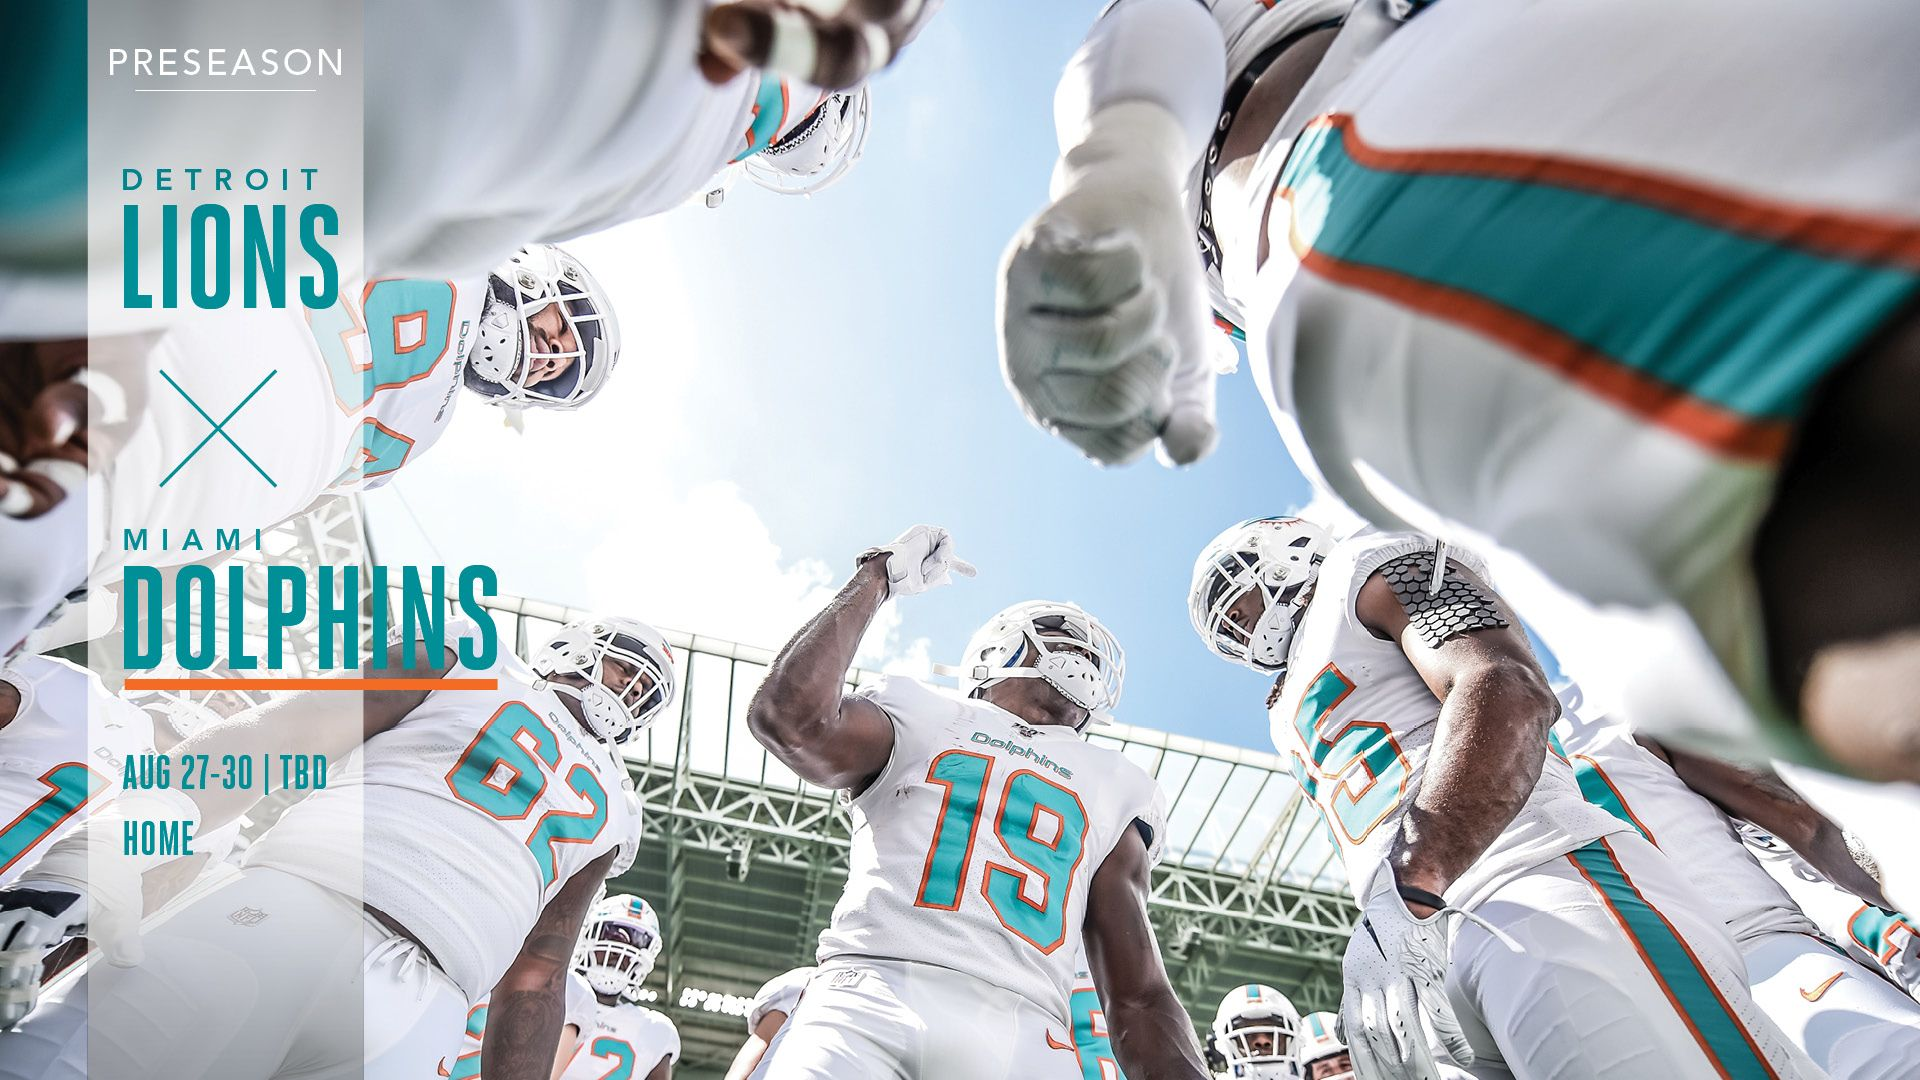 Buy Tickets: Lions vs. Dolphins, August 27-30 at Hard Rock Stadium